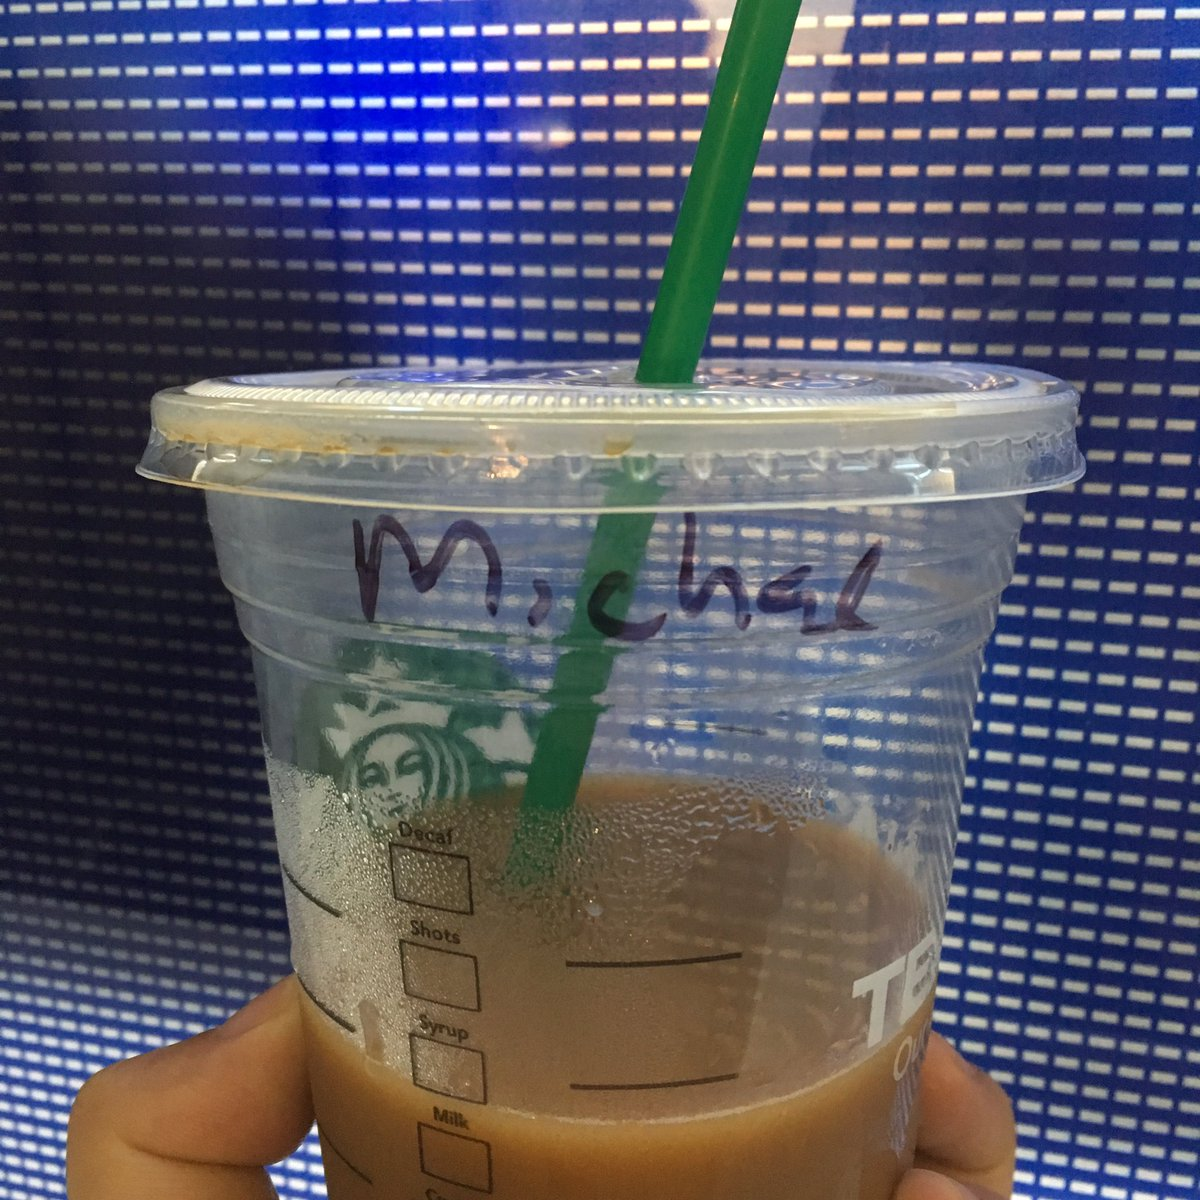 You know, when they ask my name, I spell out 'Mariko - M-A-R-I-K-O' but every time it end up in wrong name